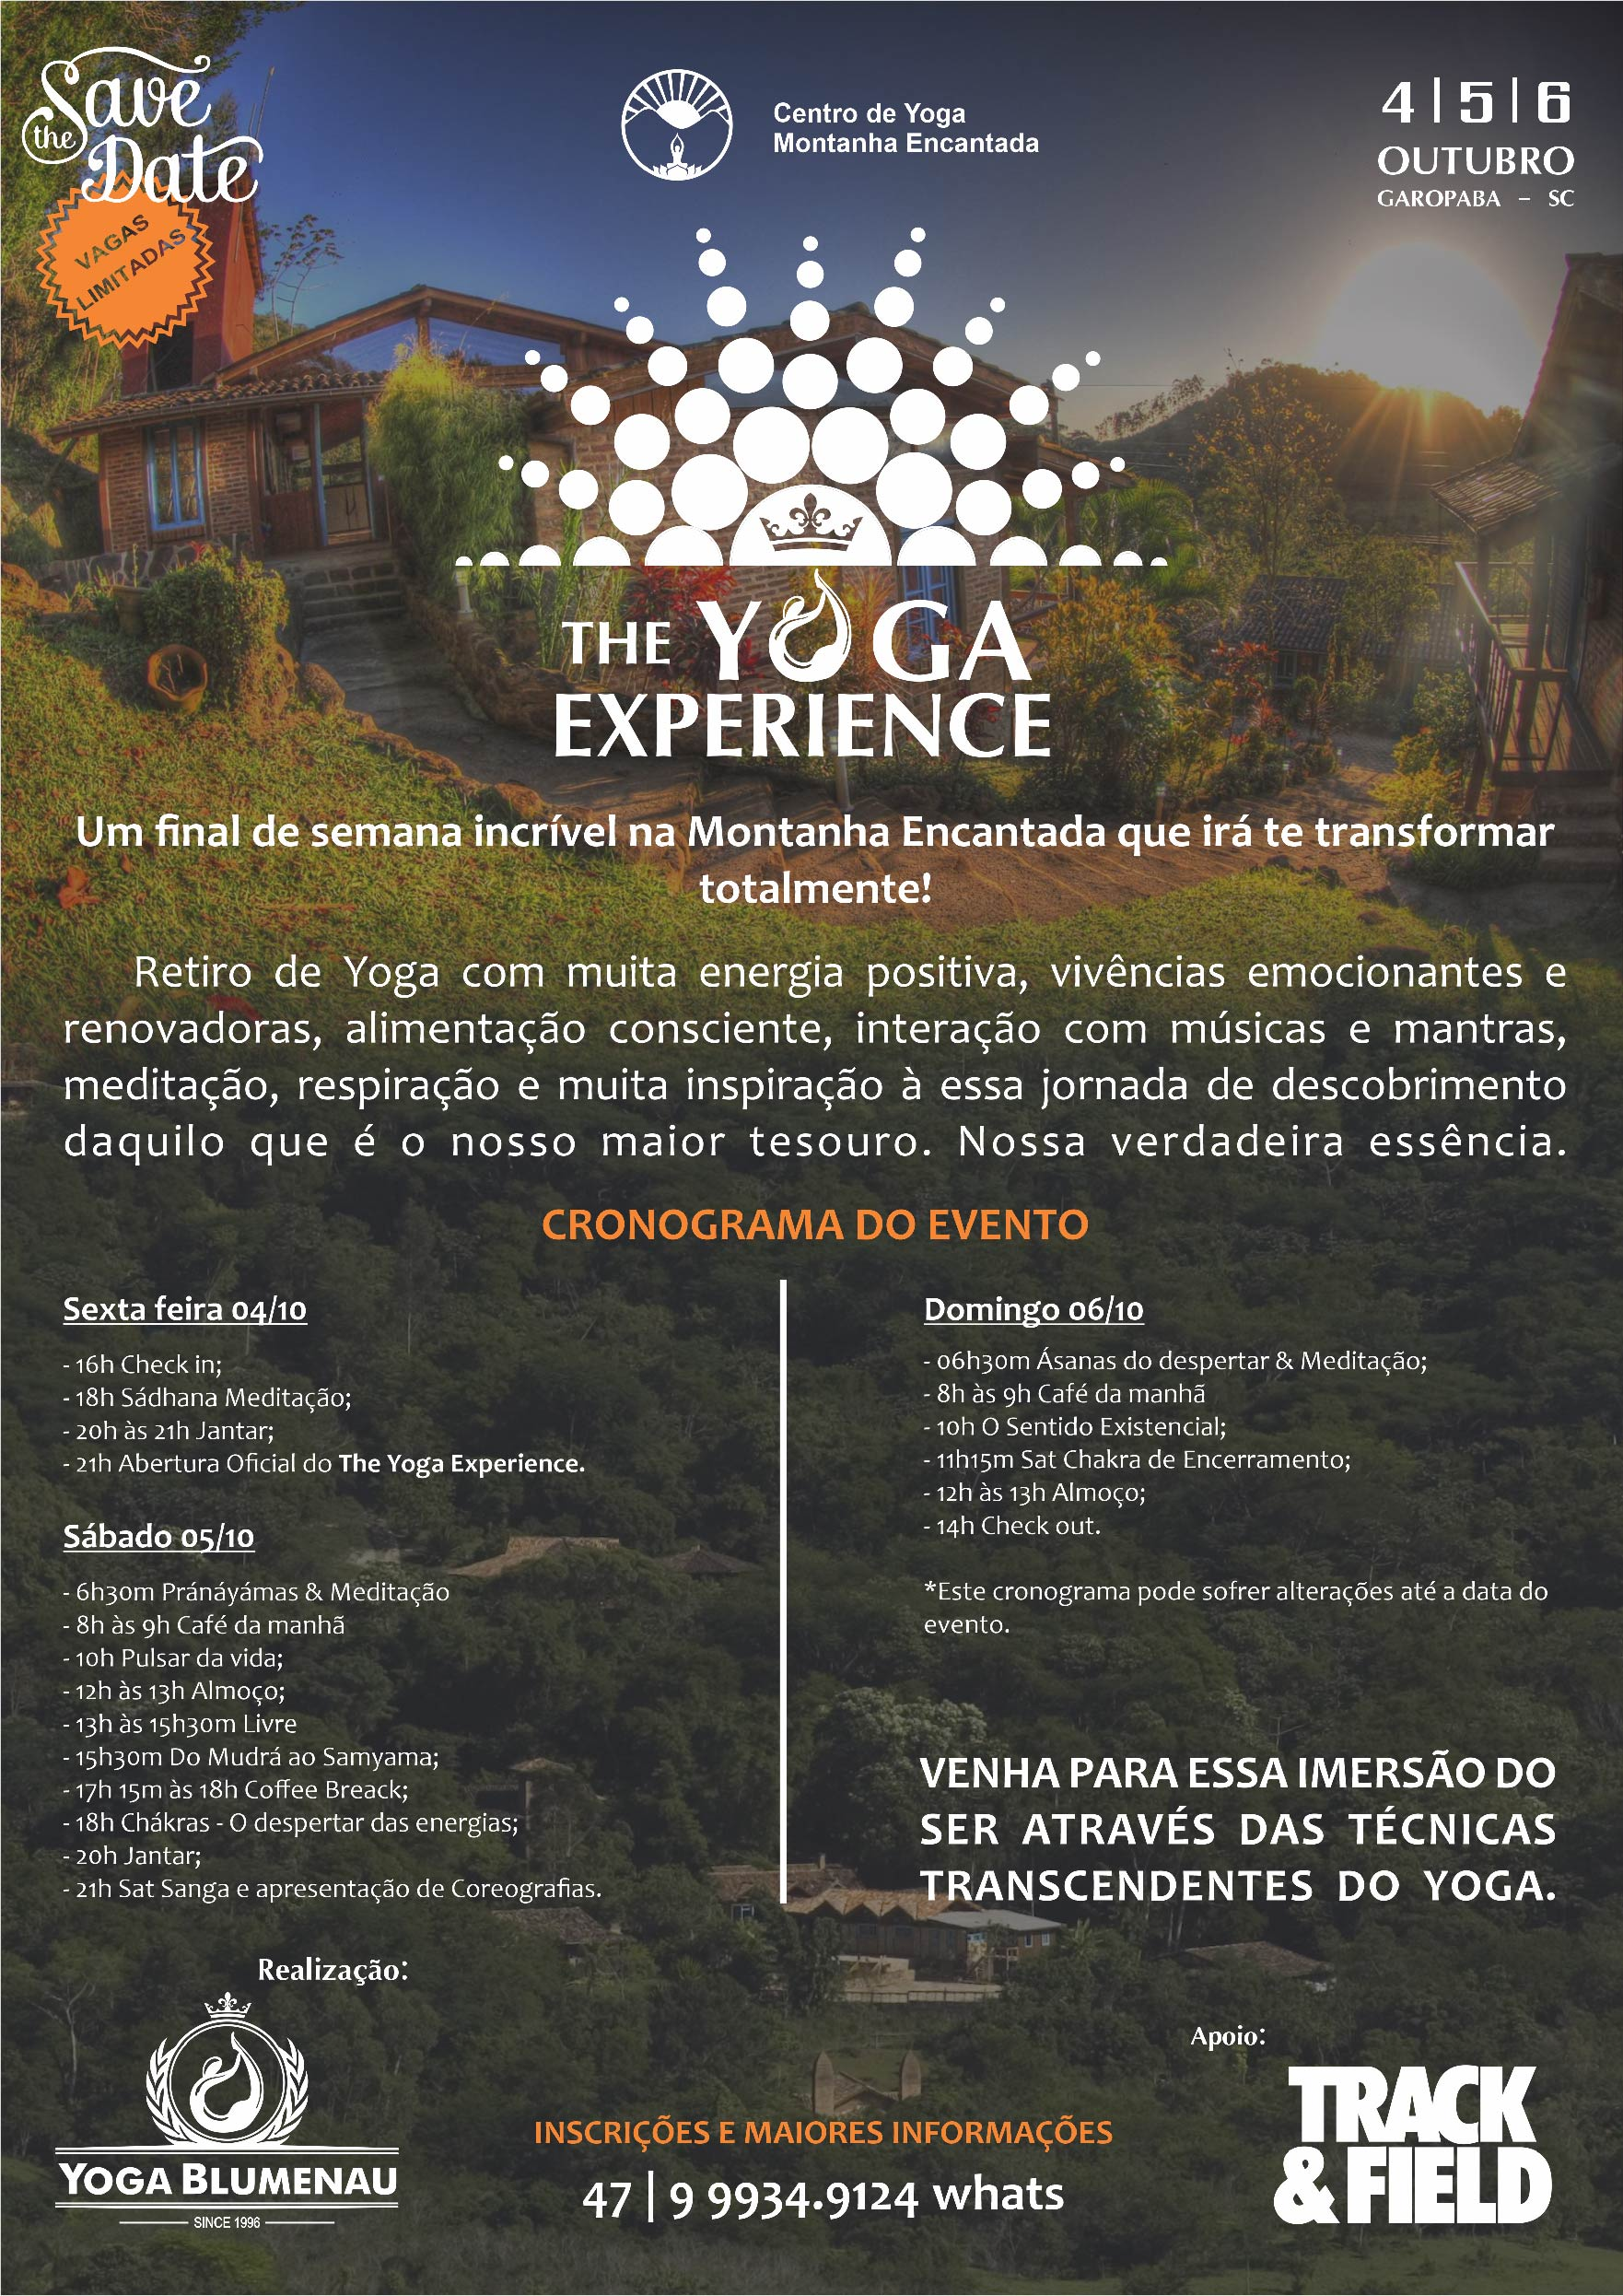 The Yoga Experience 2019  cartaz com cronograma